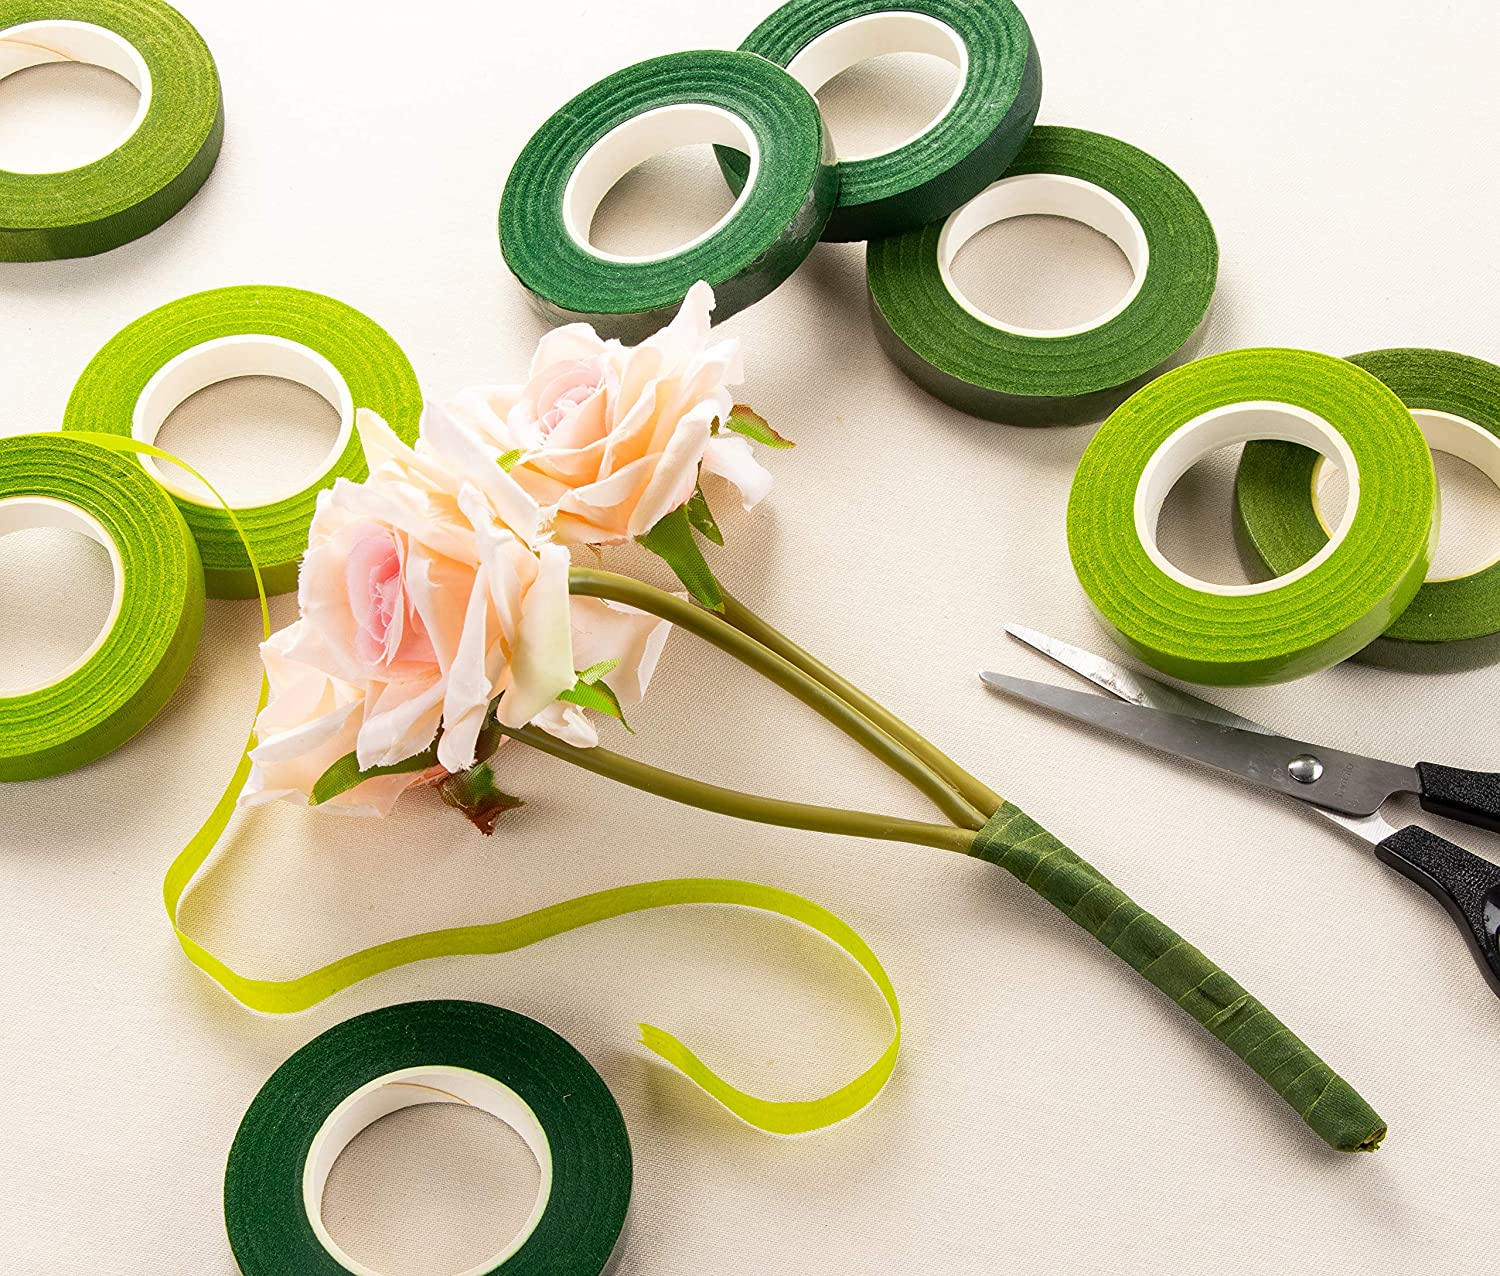 Craft Supplies 12 Rolls Floral Tapes Flower Adhesives for Stem ...